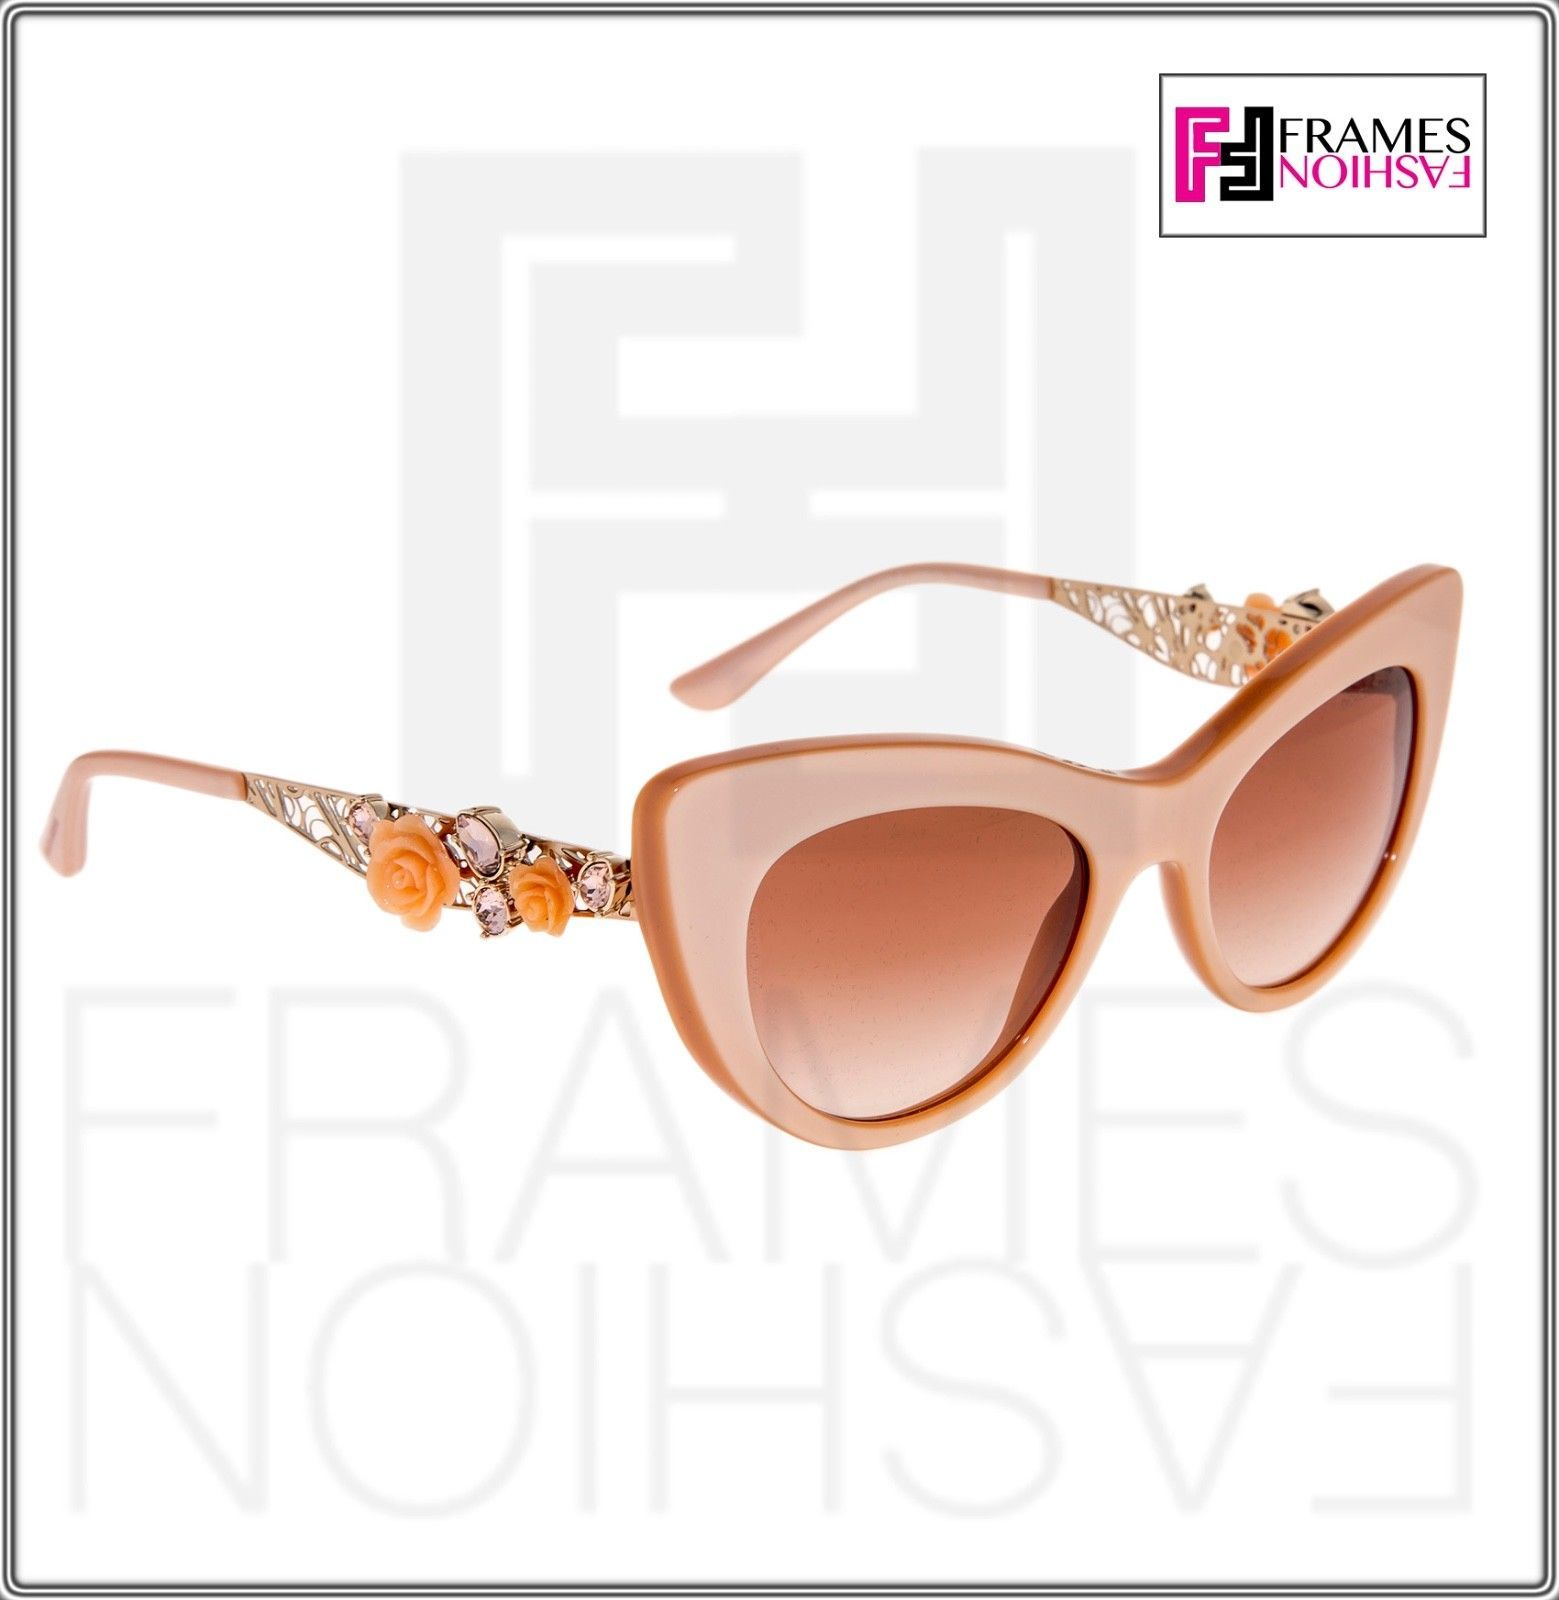 Dolce & Gabbana 4302 Metal FLOWER LACE Pearl Nude Pink Silver Cat Eye Sunglasses